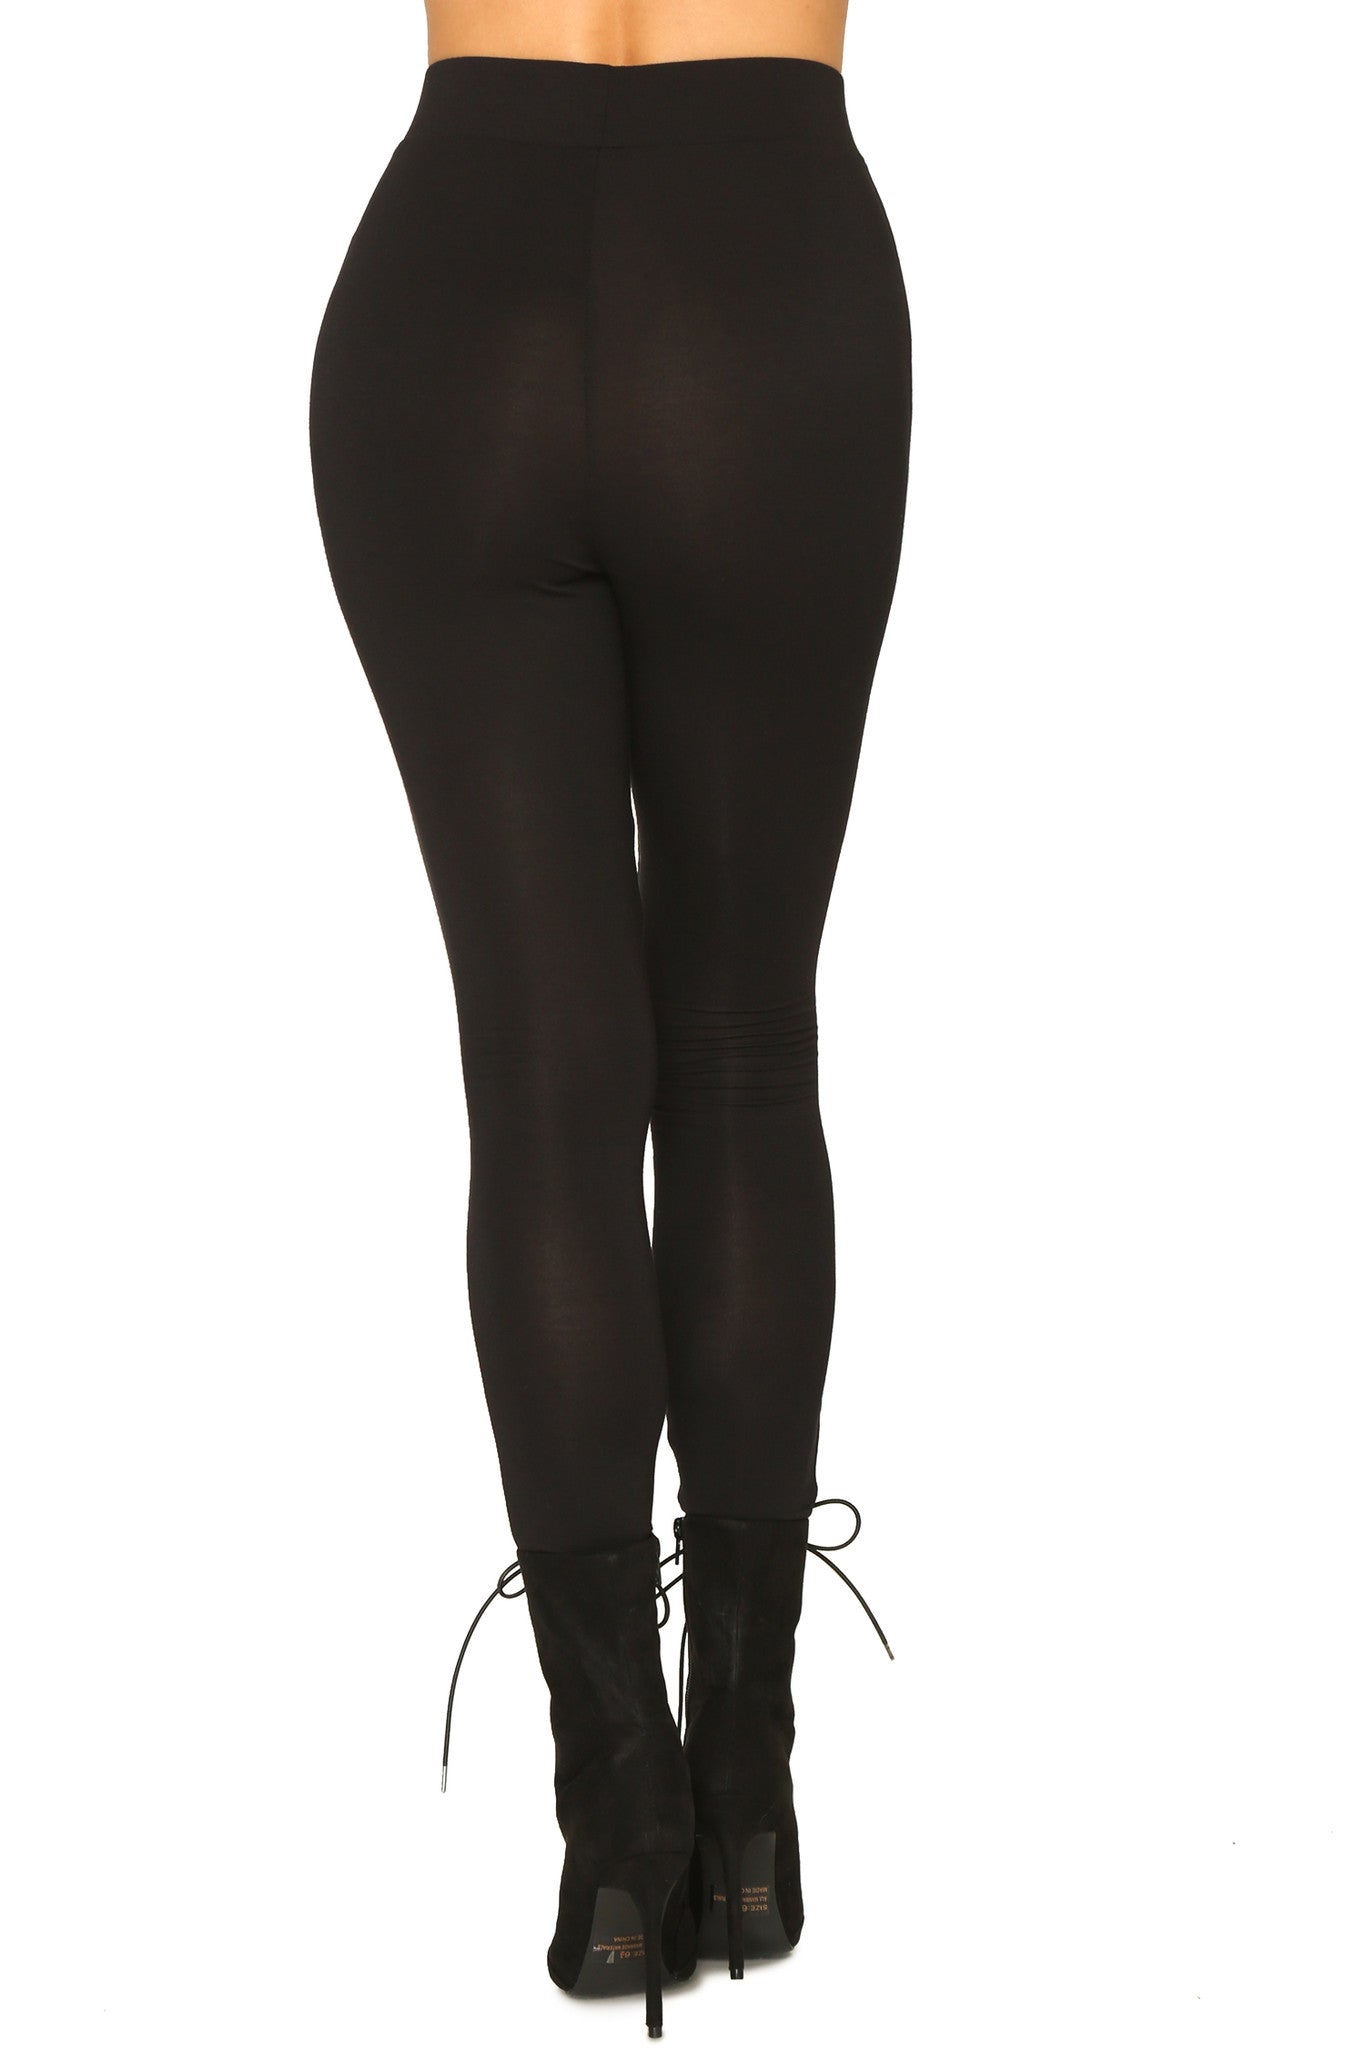 SIENNA LEGGINGS - Glam Envy - 3